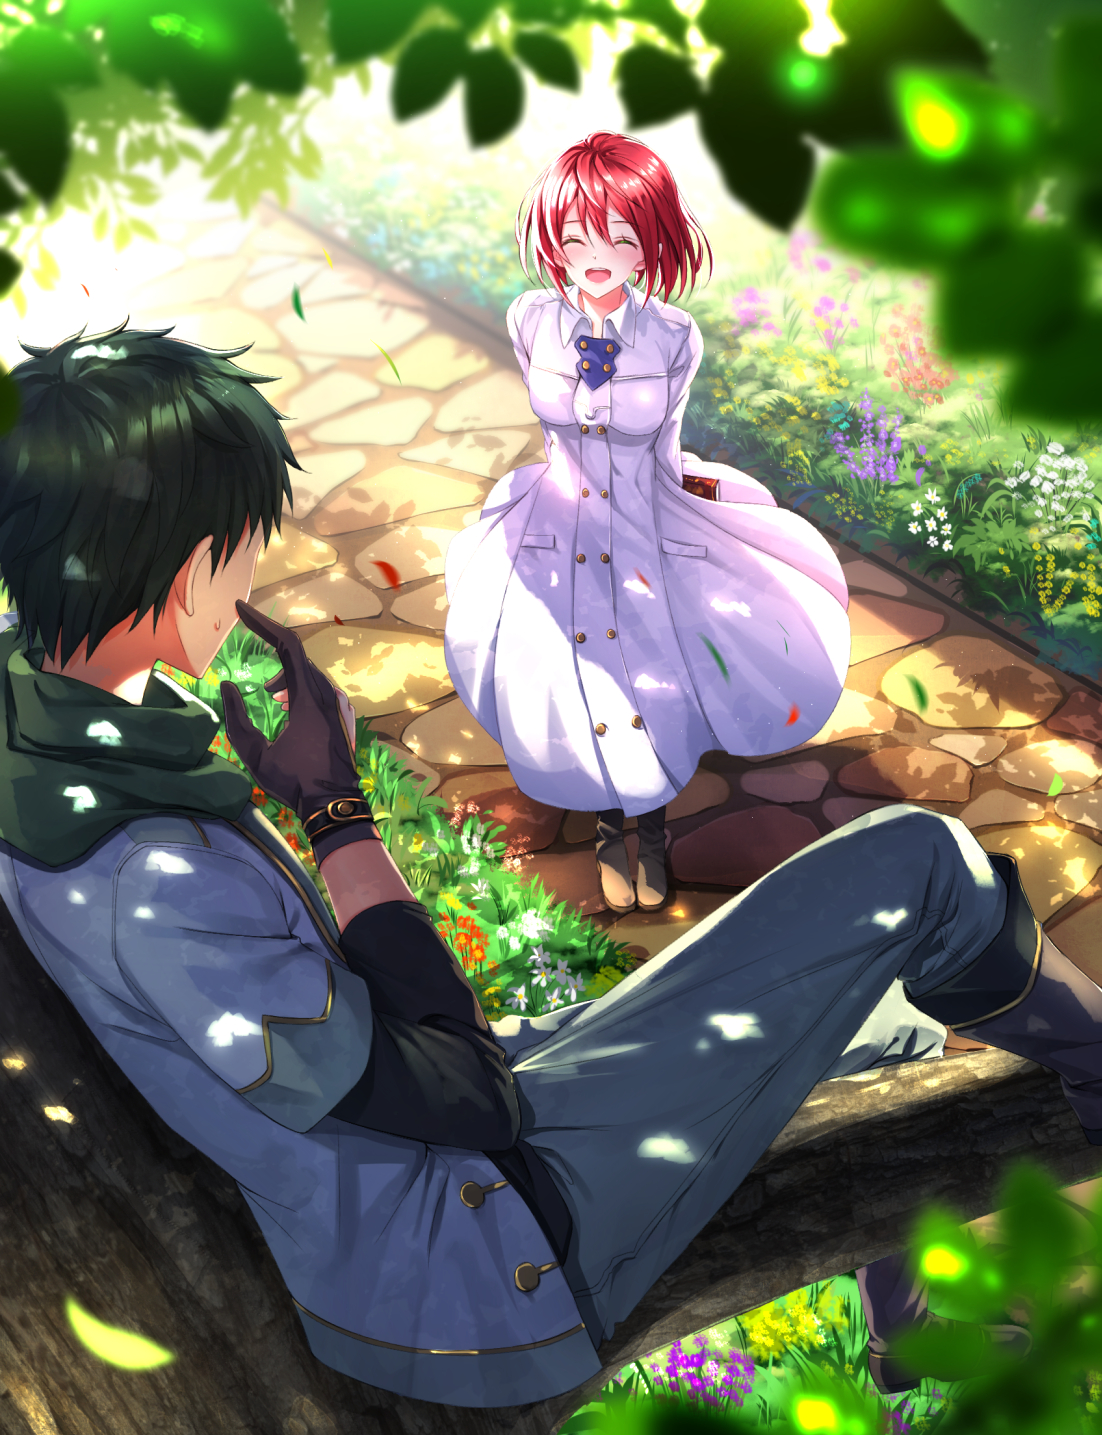 akagami no shirayukihime images snow white with the red hair hd